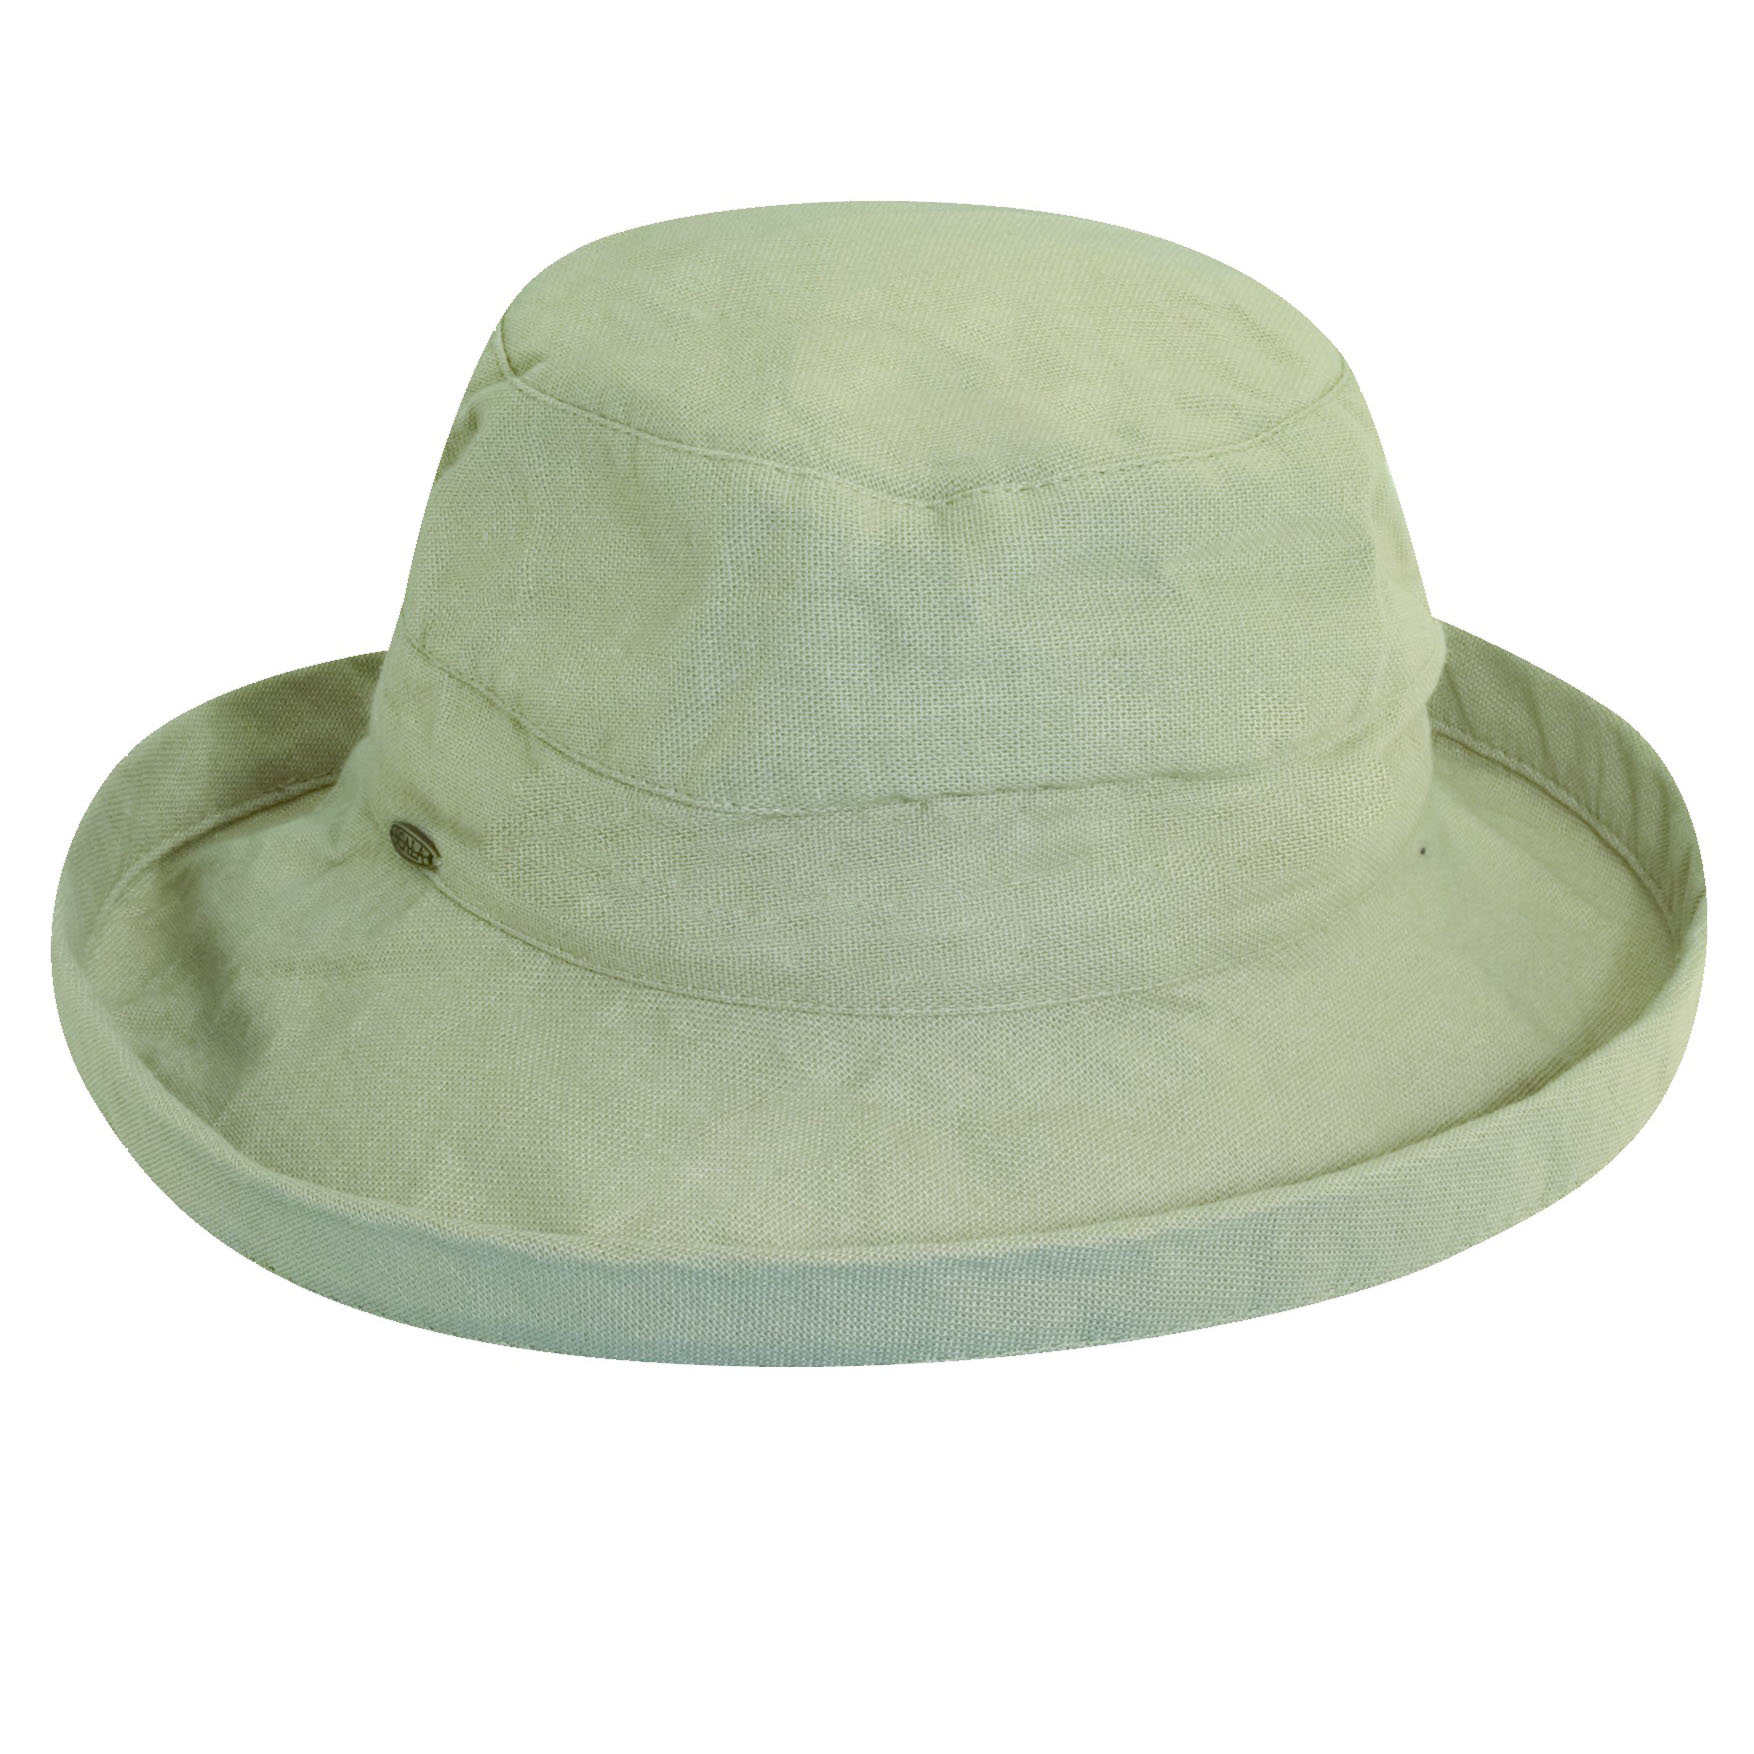 Cotton Sunhat with 2 1 2 inch Brim Desert 33534b9fdd0a